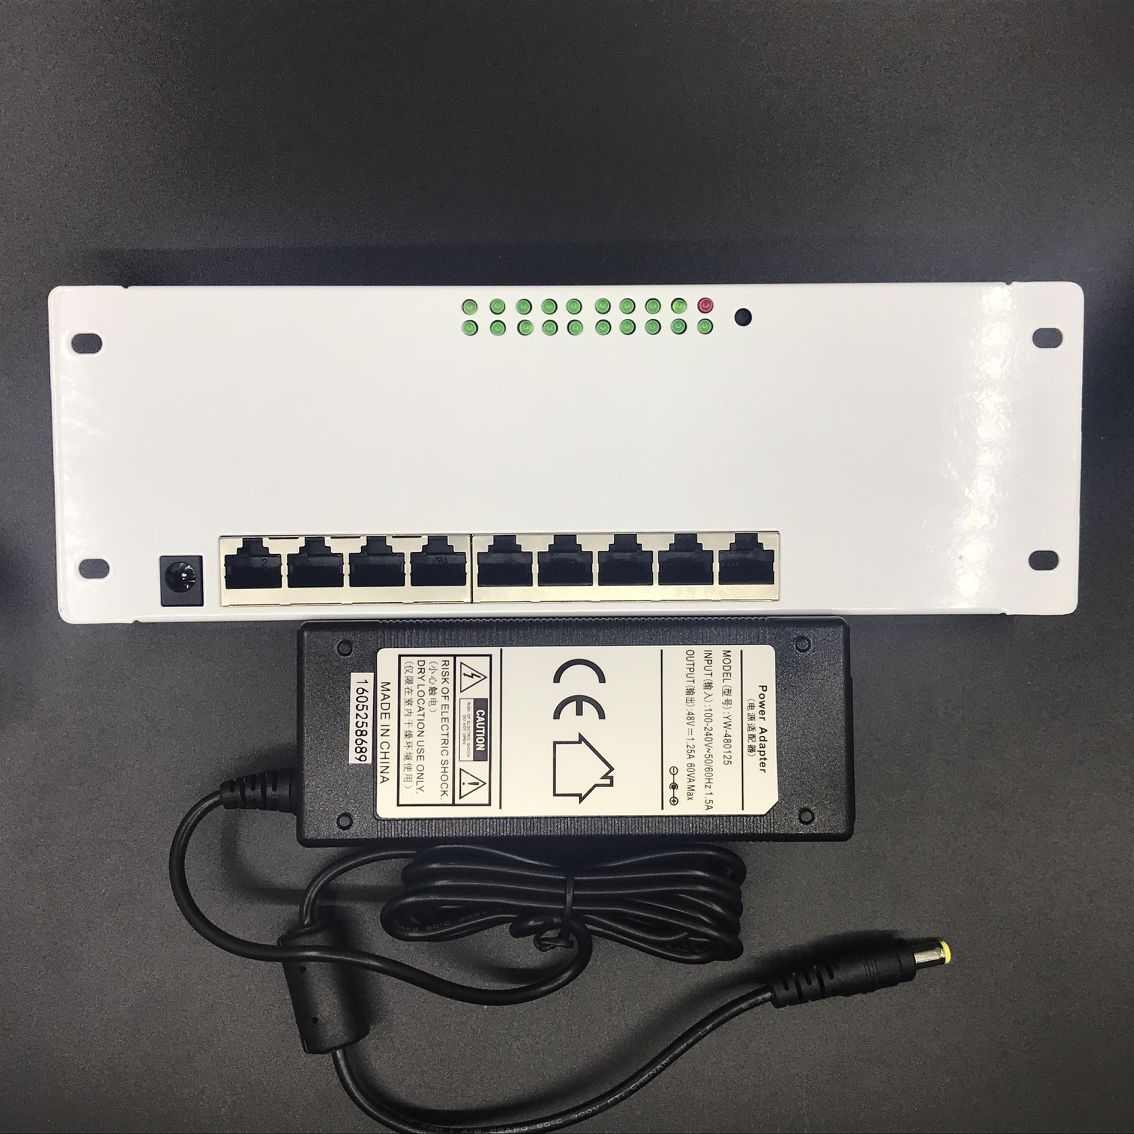 ANDDEAR 9 port POE router module manufacturer t sell  full Gigabit 10/100/1000M POE 48V2A router modules OEM wired router module 5